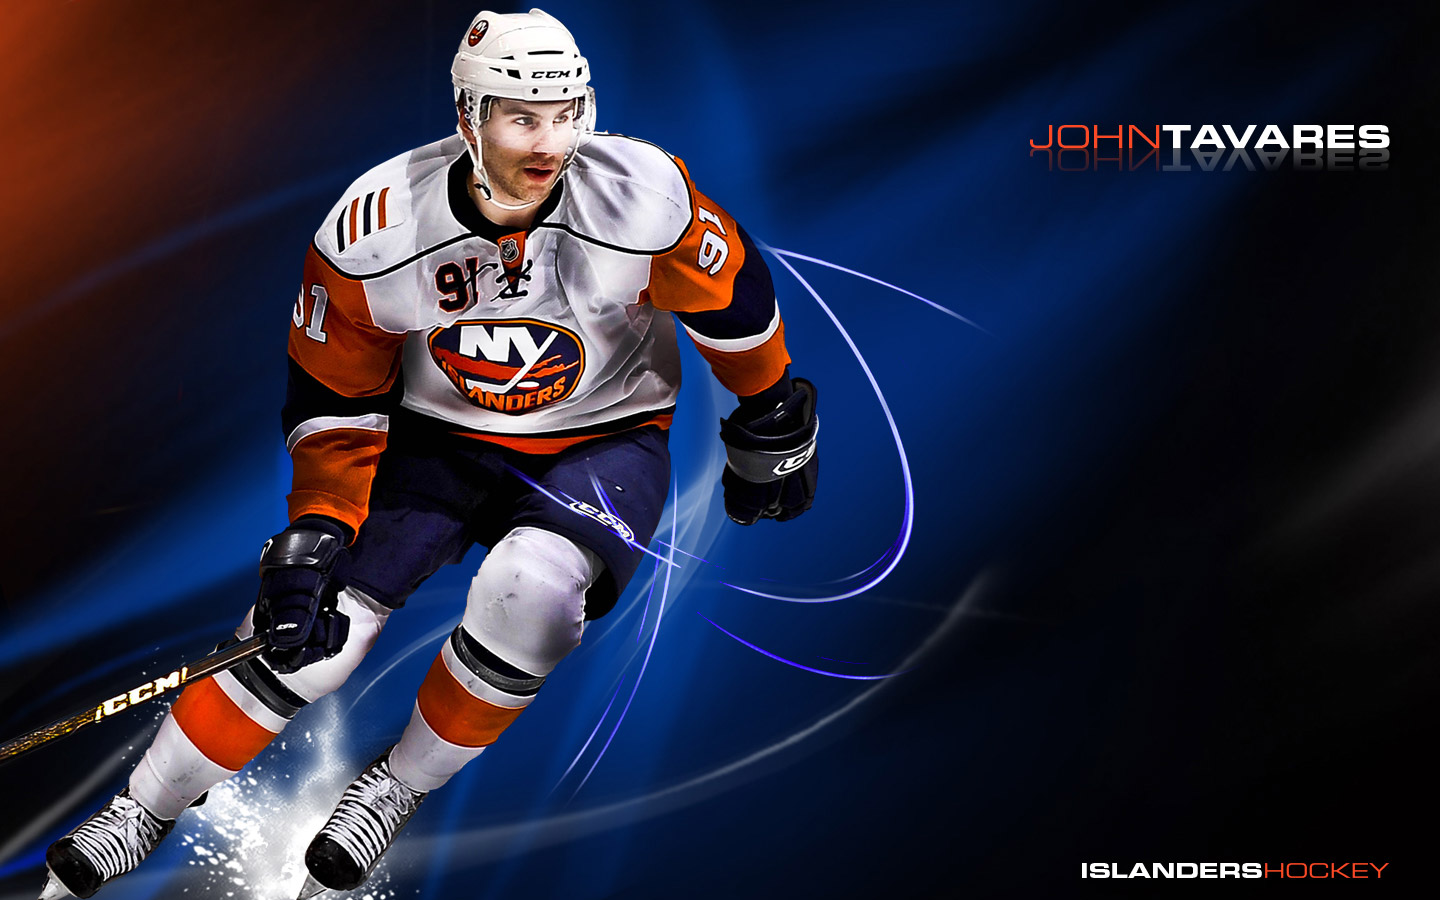 New York Islanders Iphone Wallpaper Hockey new wallpaper 1440x900